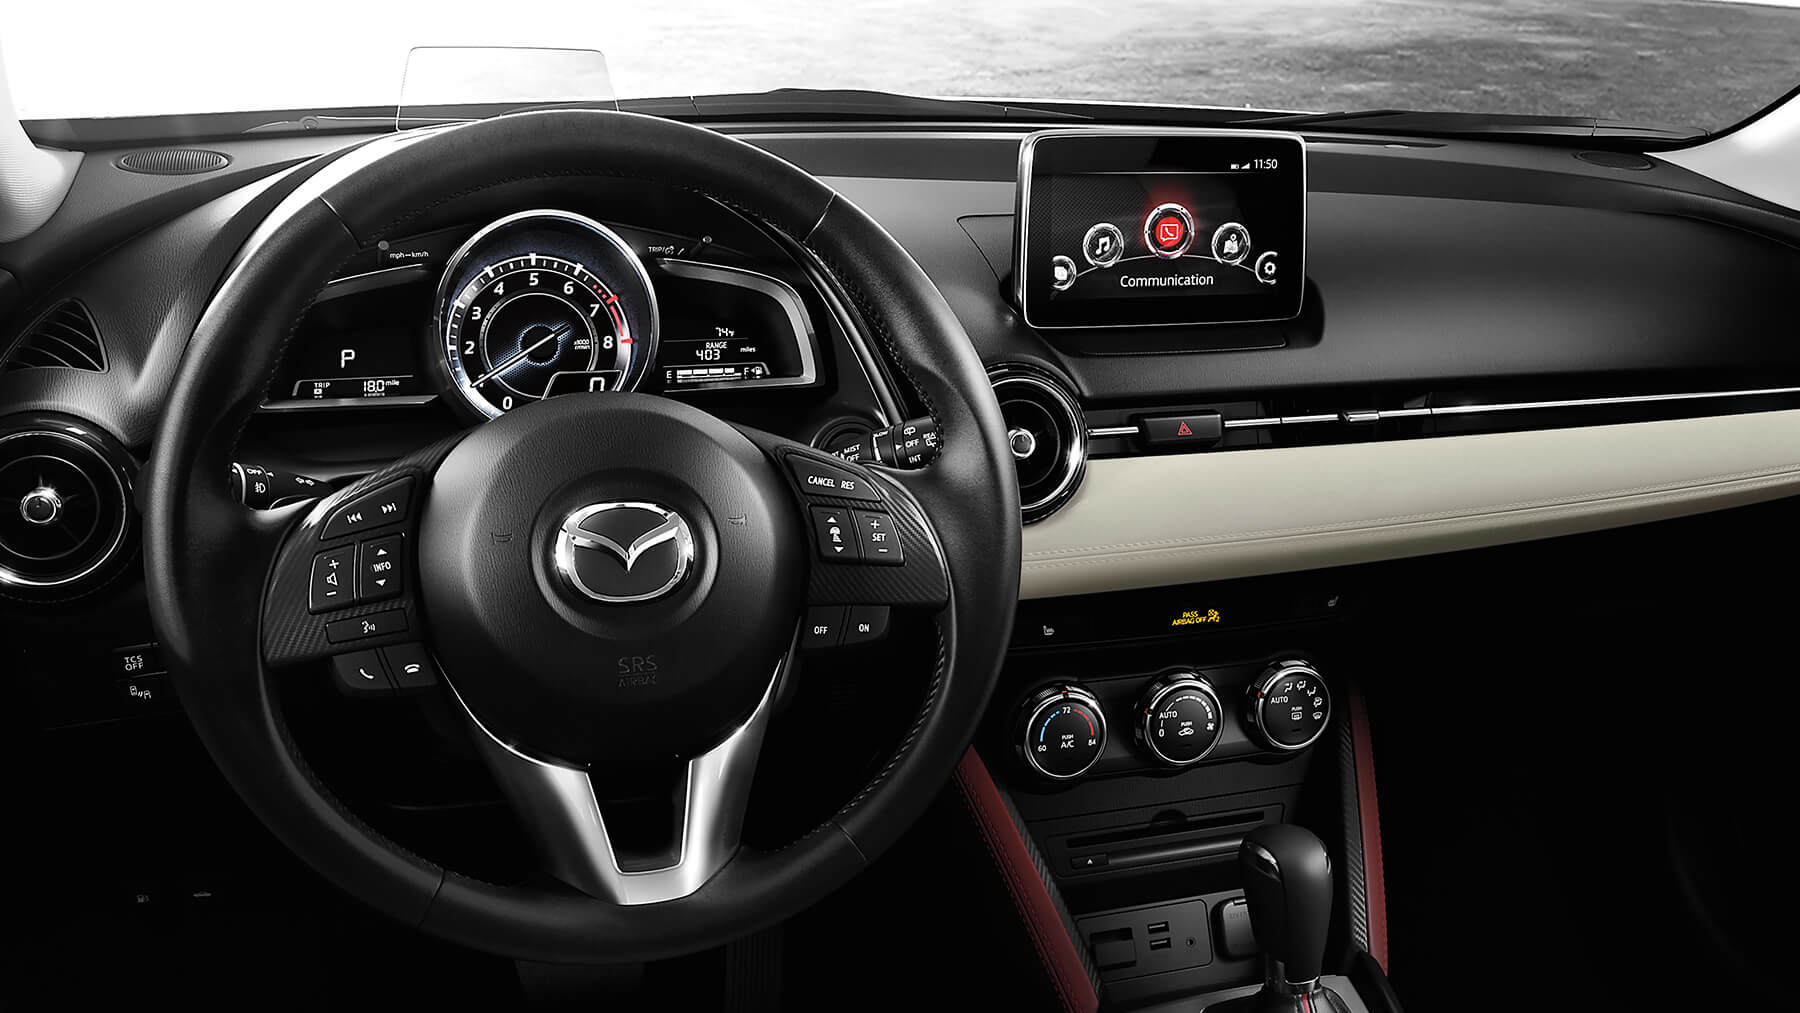 Interior of the 2017 Mazda CX-3